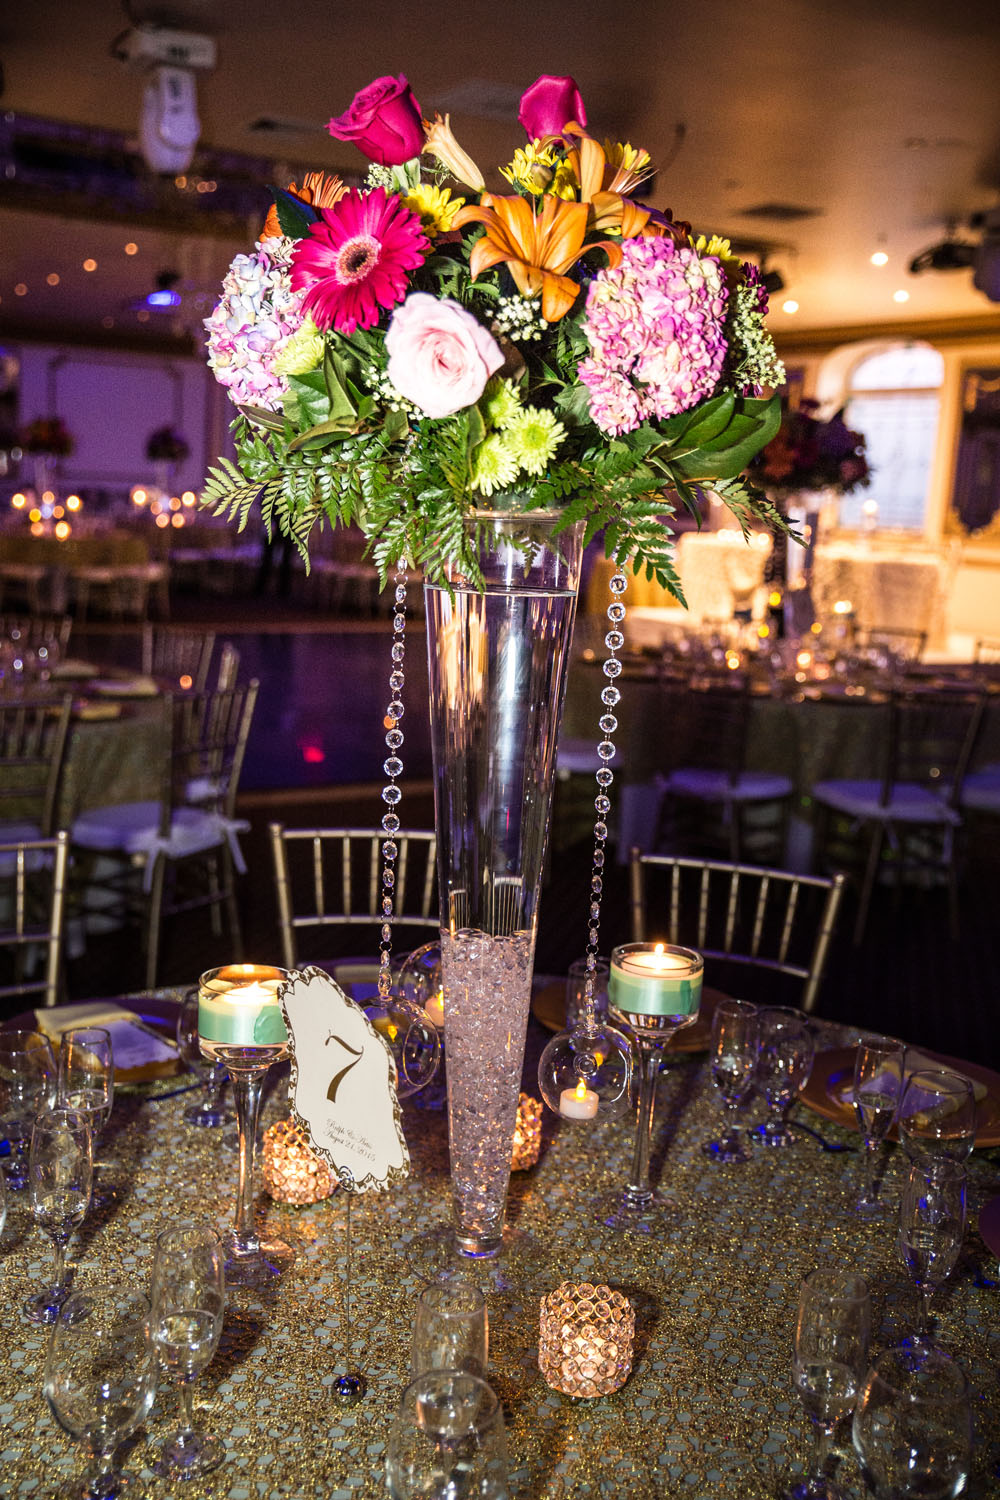 pennsylvania_bergen_county_wedding_designer_lush.jpg